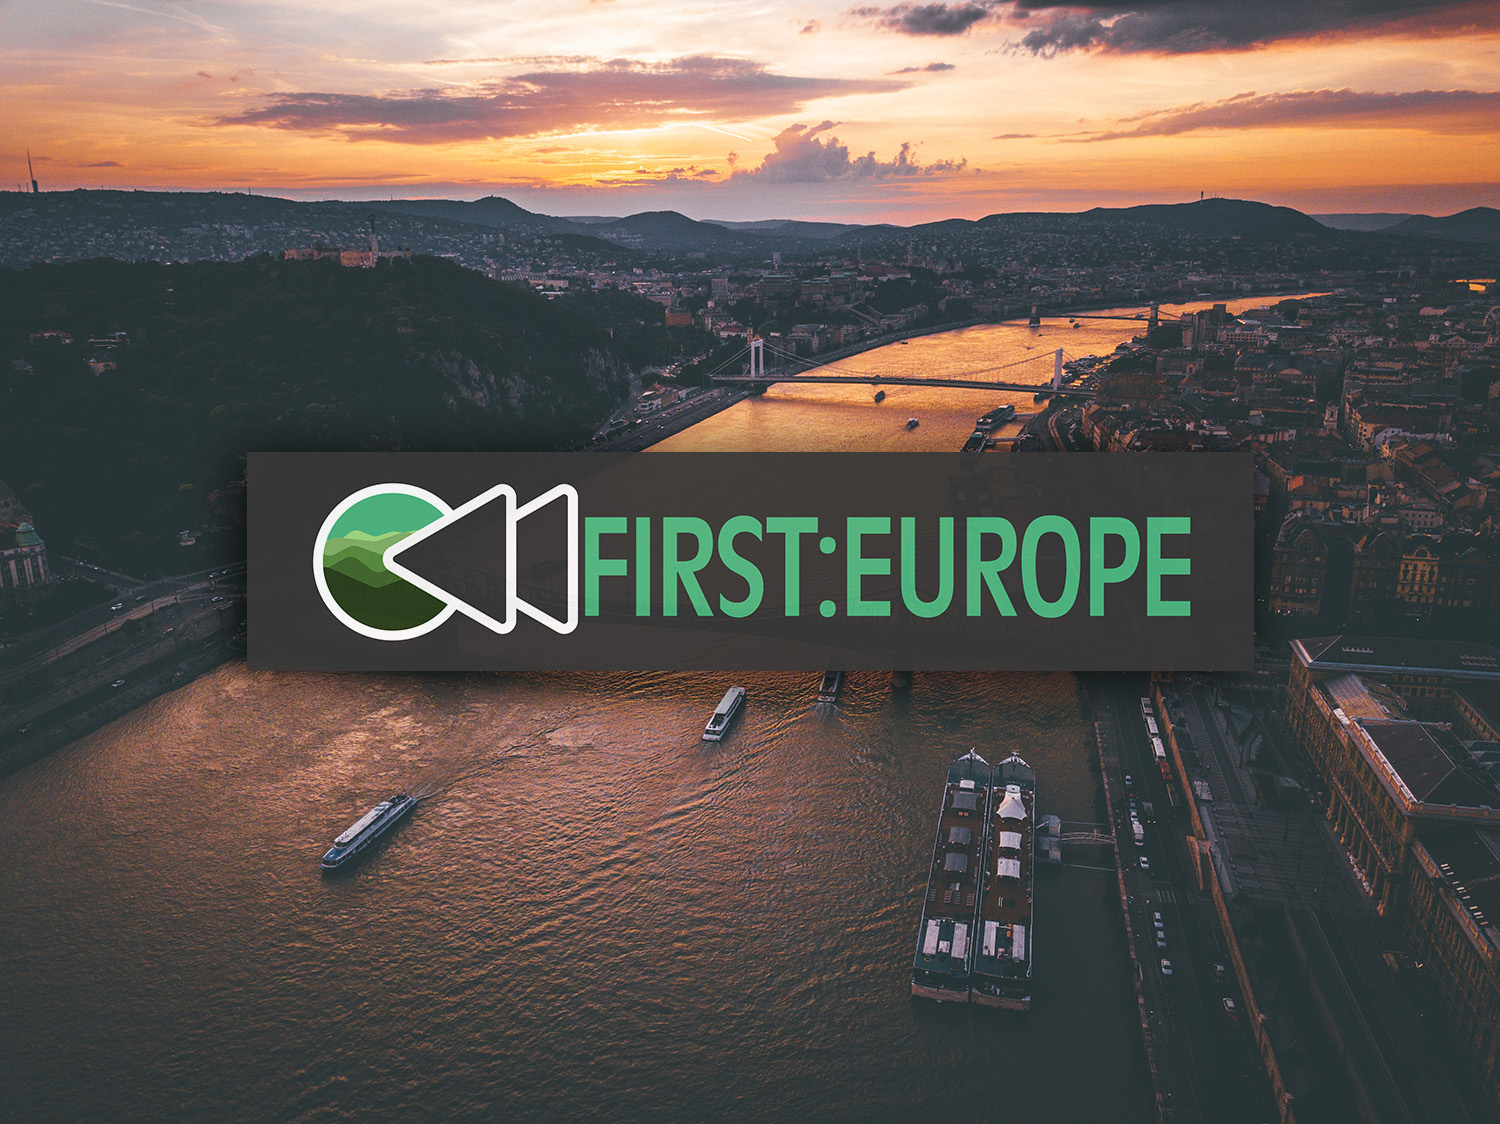 First:Europe